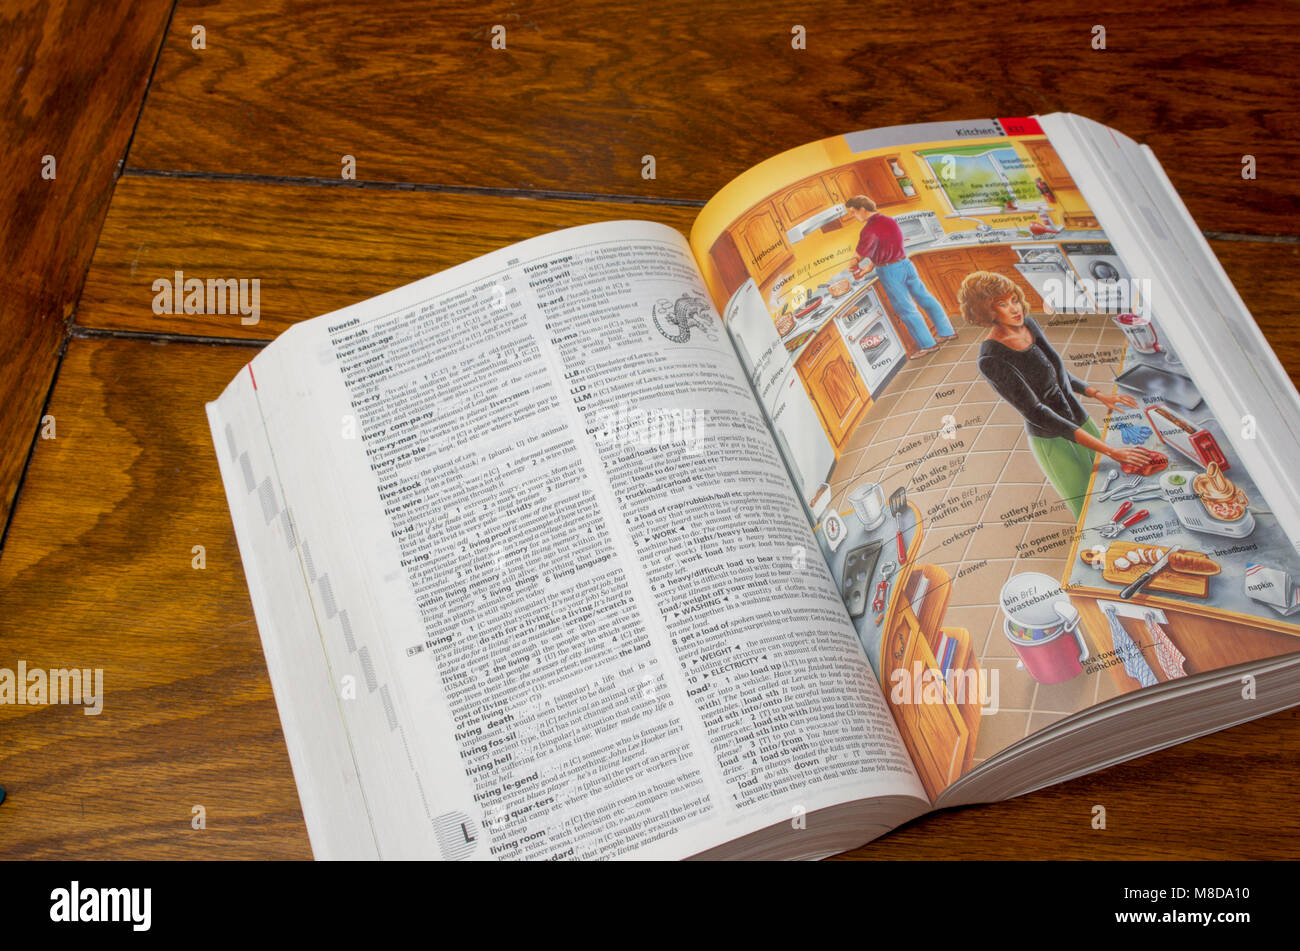 Longman Directory of Contemporary English open to show pictorial pages - Stock Image